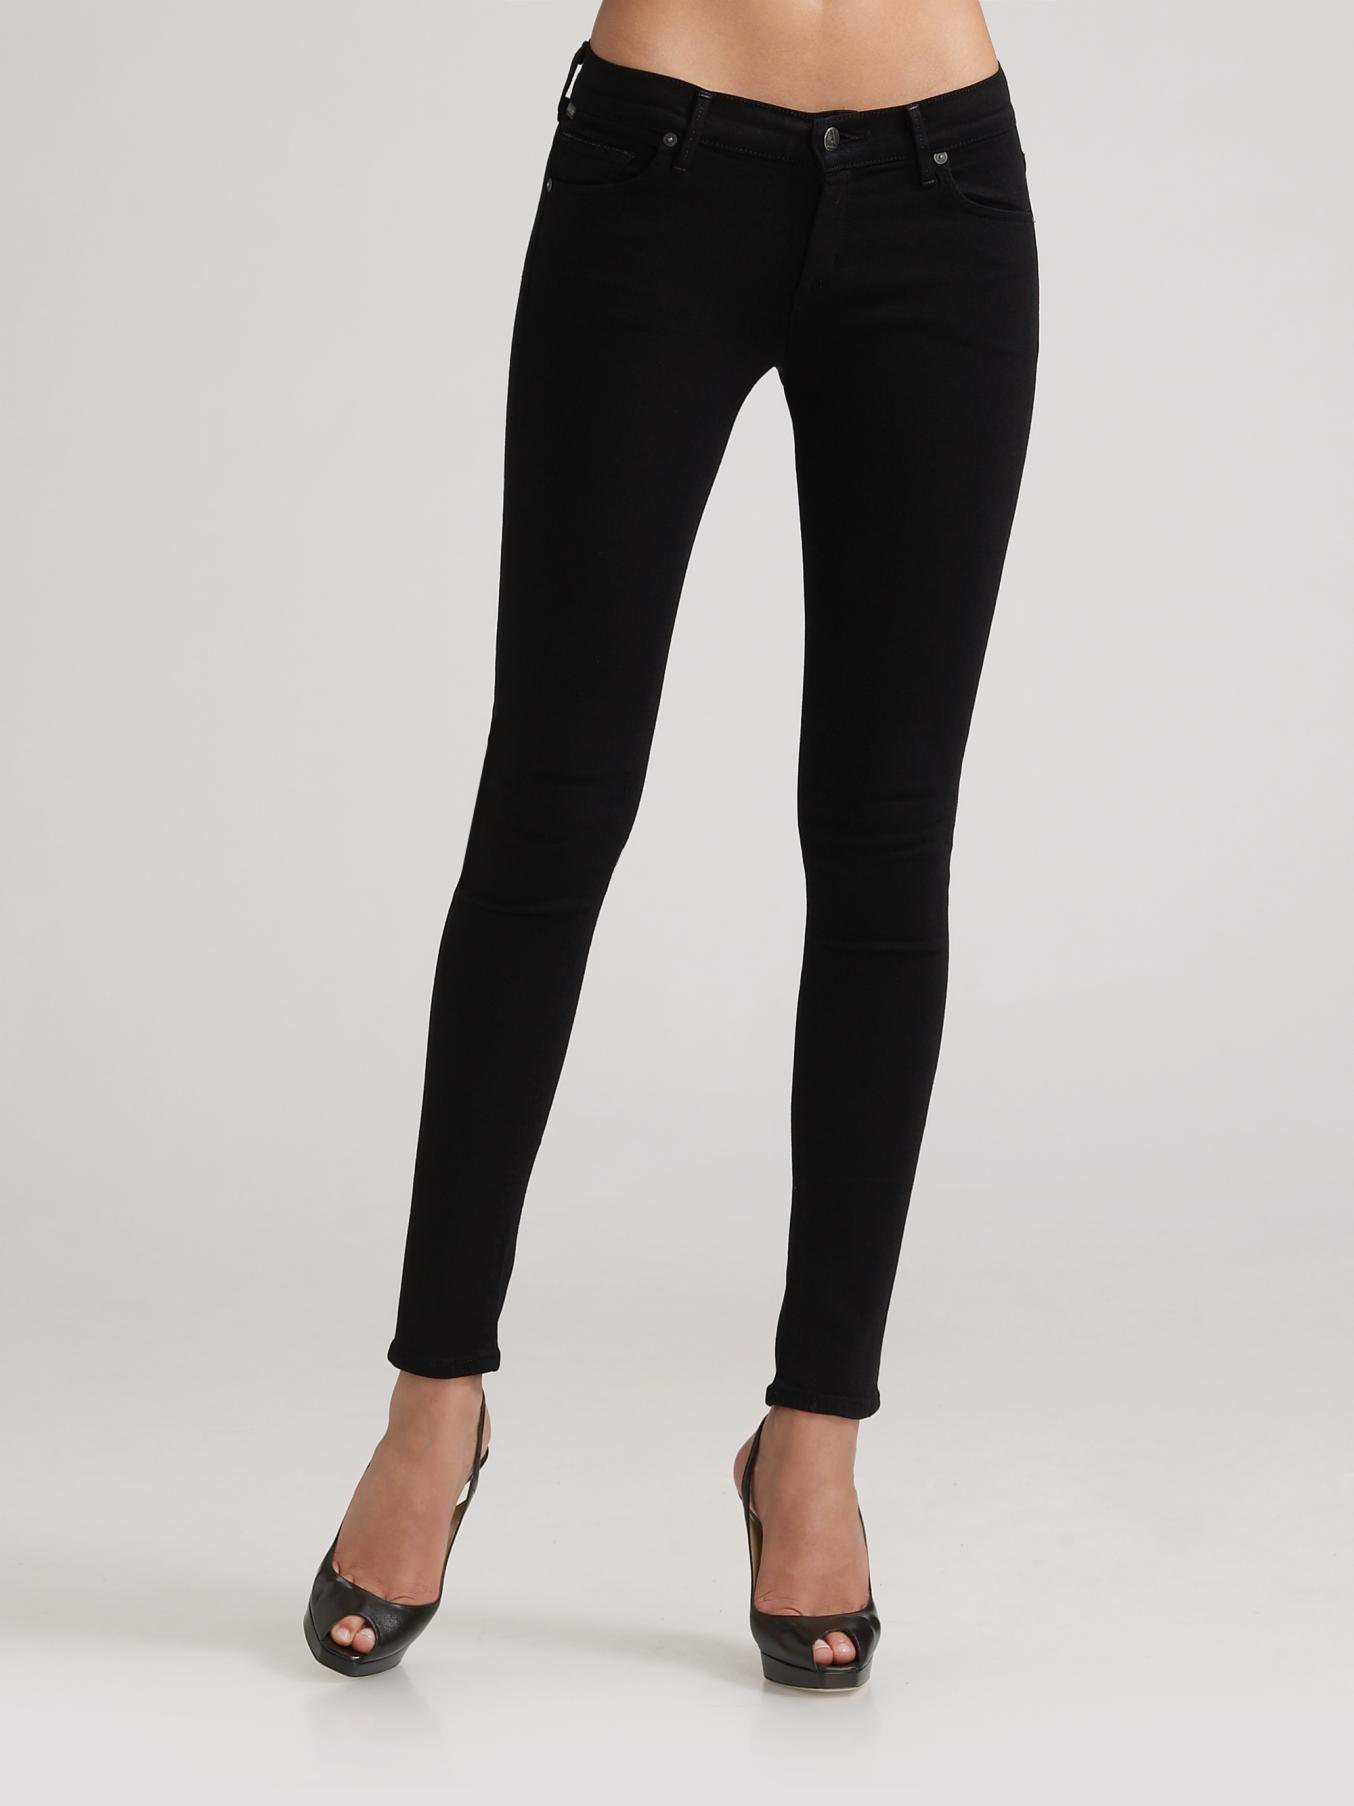 Lyst - Citizens of humanity Avedon Skinny Jeans in Black